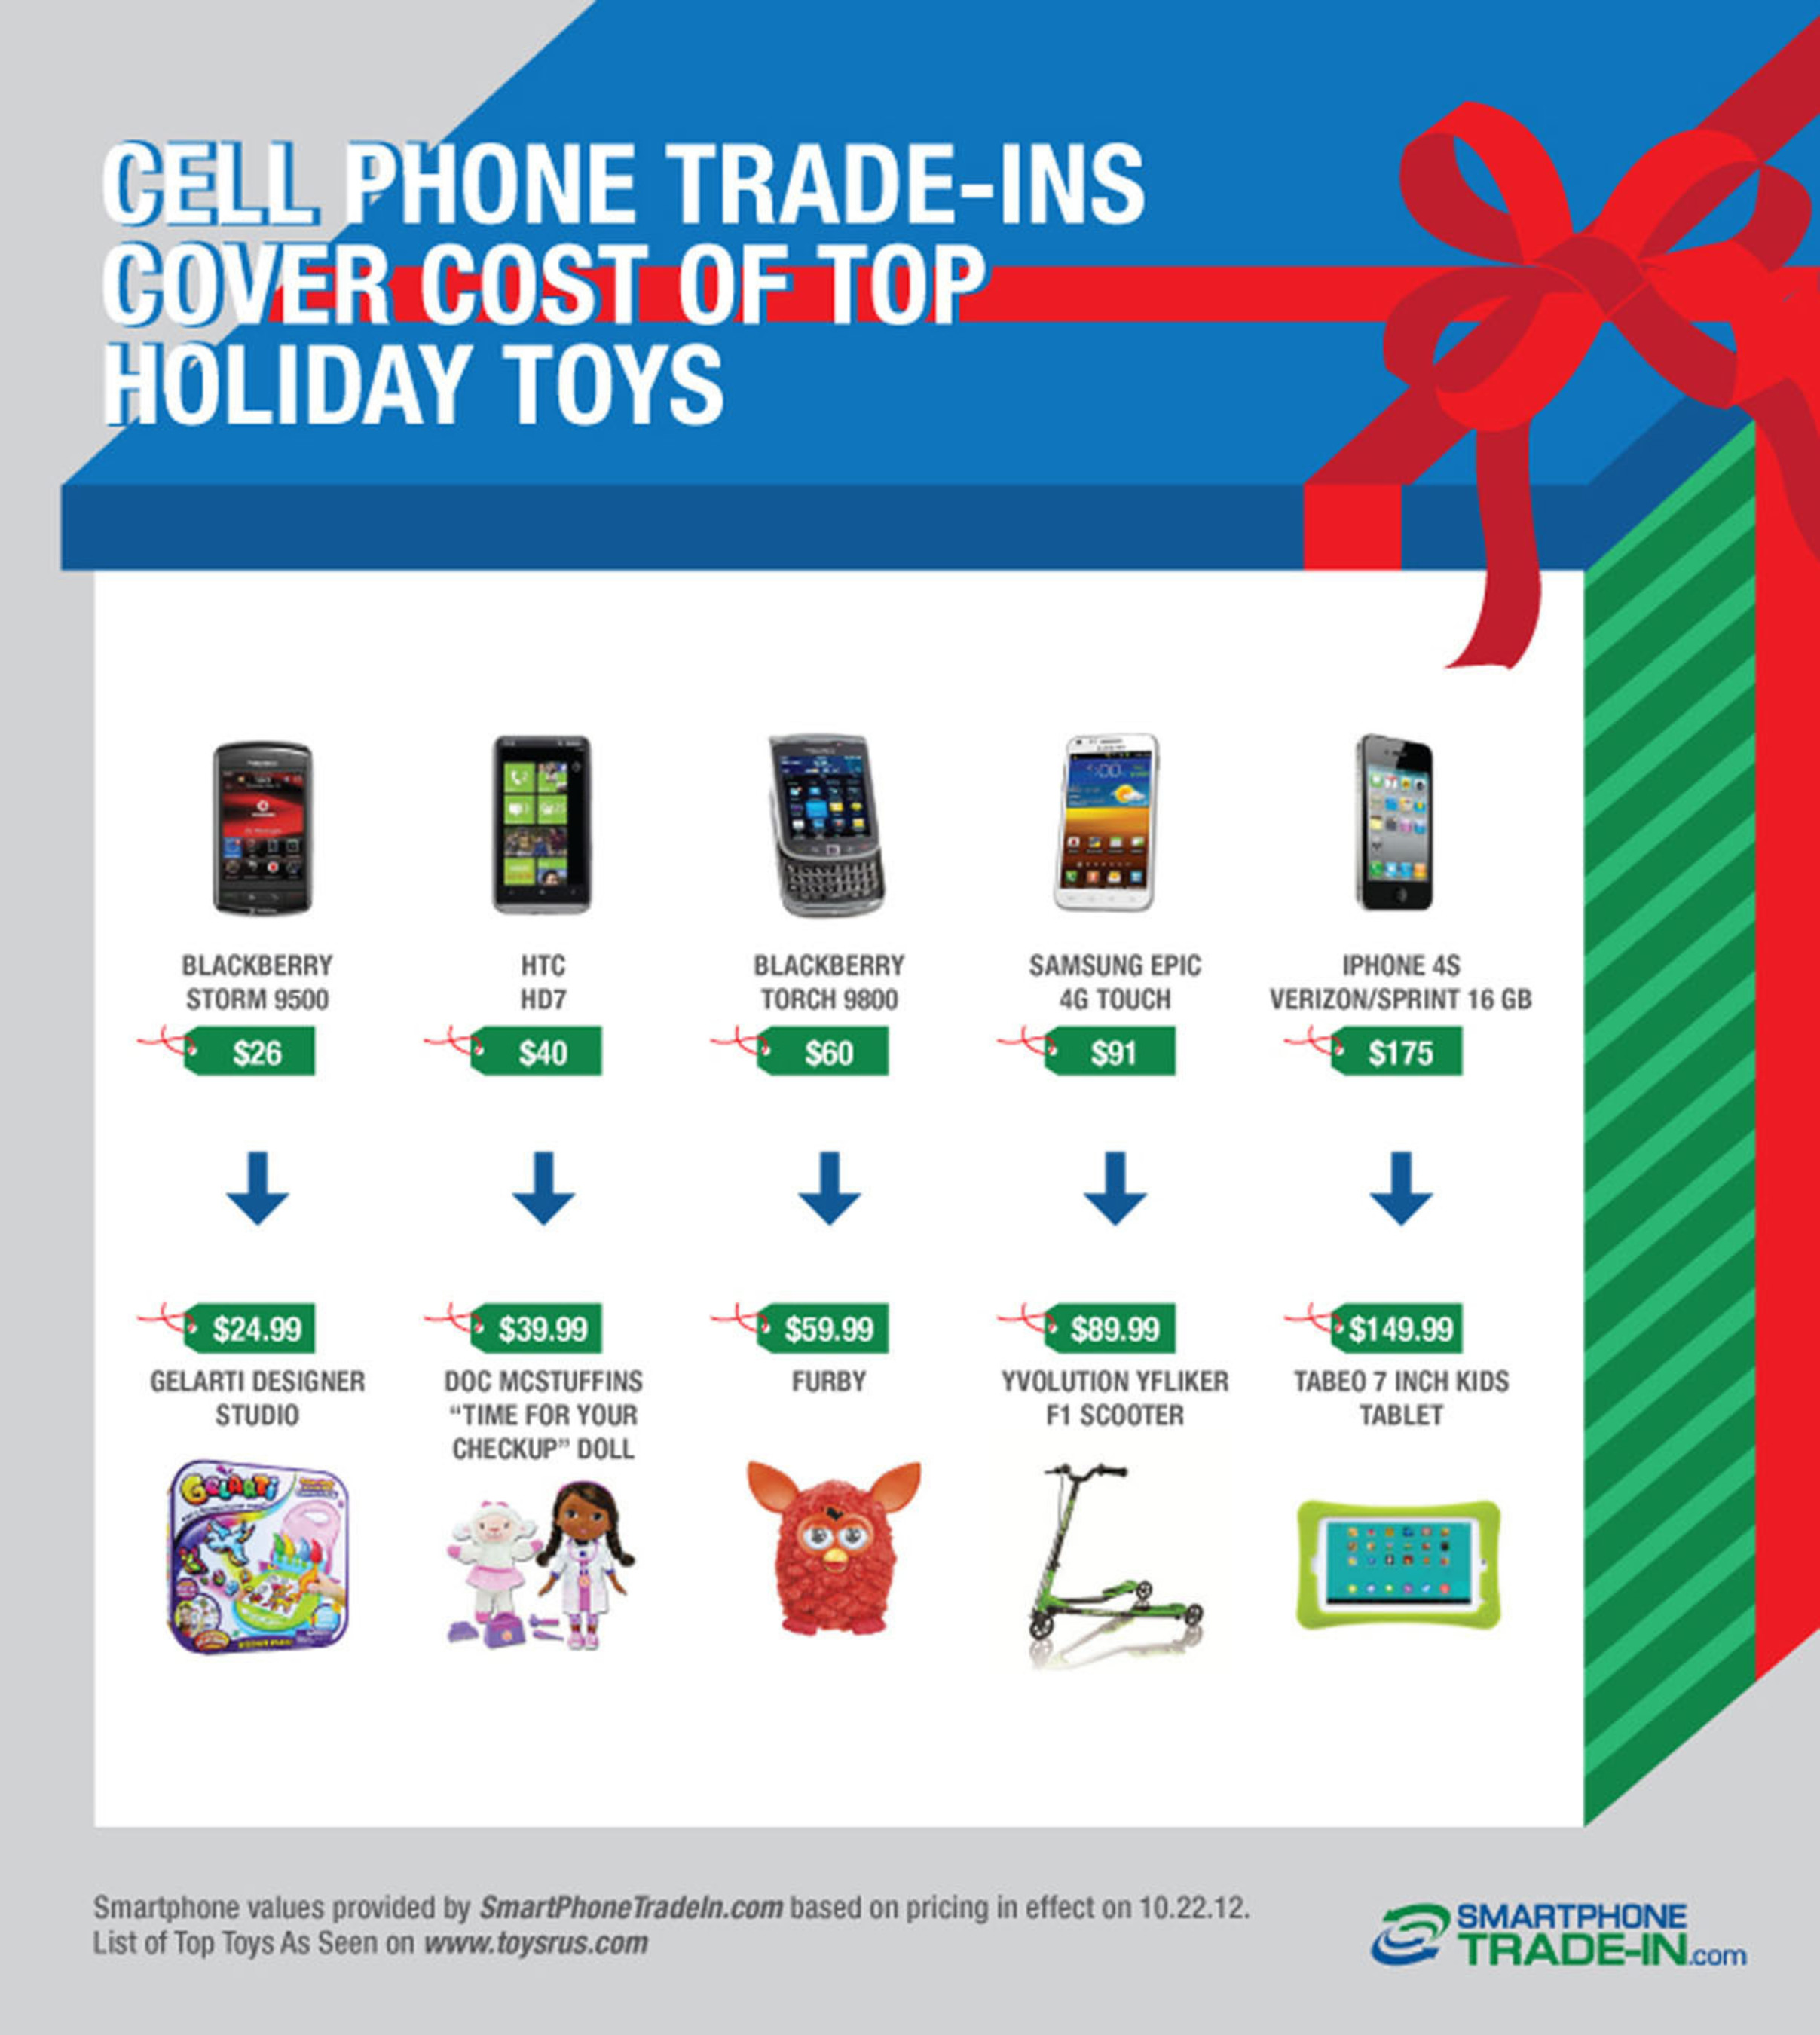 The experts at SmartphoneTradeIn.com demonstrate how trading in the following smartphones can cover the cost of 10 of this season's hottest toys. Source: www.smartphonetradein.com Smartphone pricing as of 10/22/12 and subject to change.  Toy pricing based on ToysRus.com 10/22/12.  (PRNewsFoto/SmartphoneTradeIn.com)